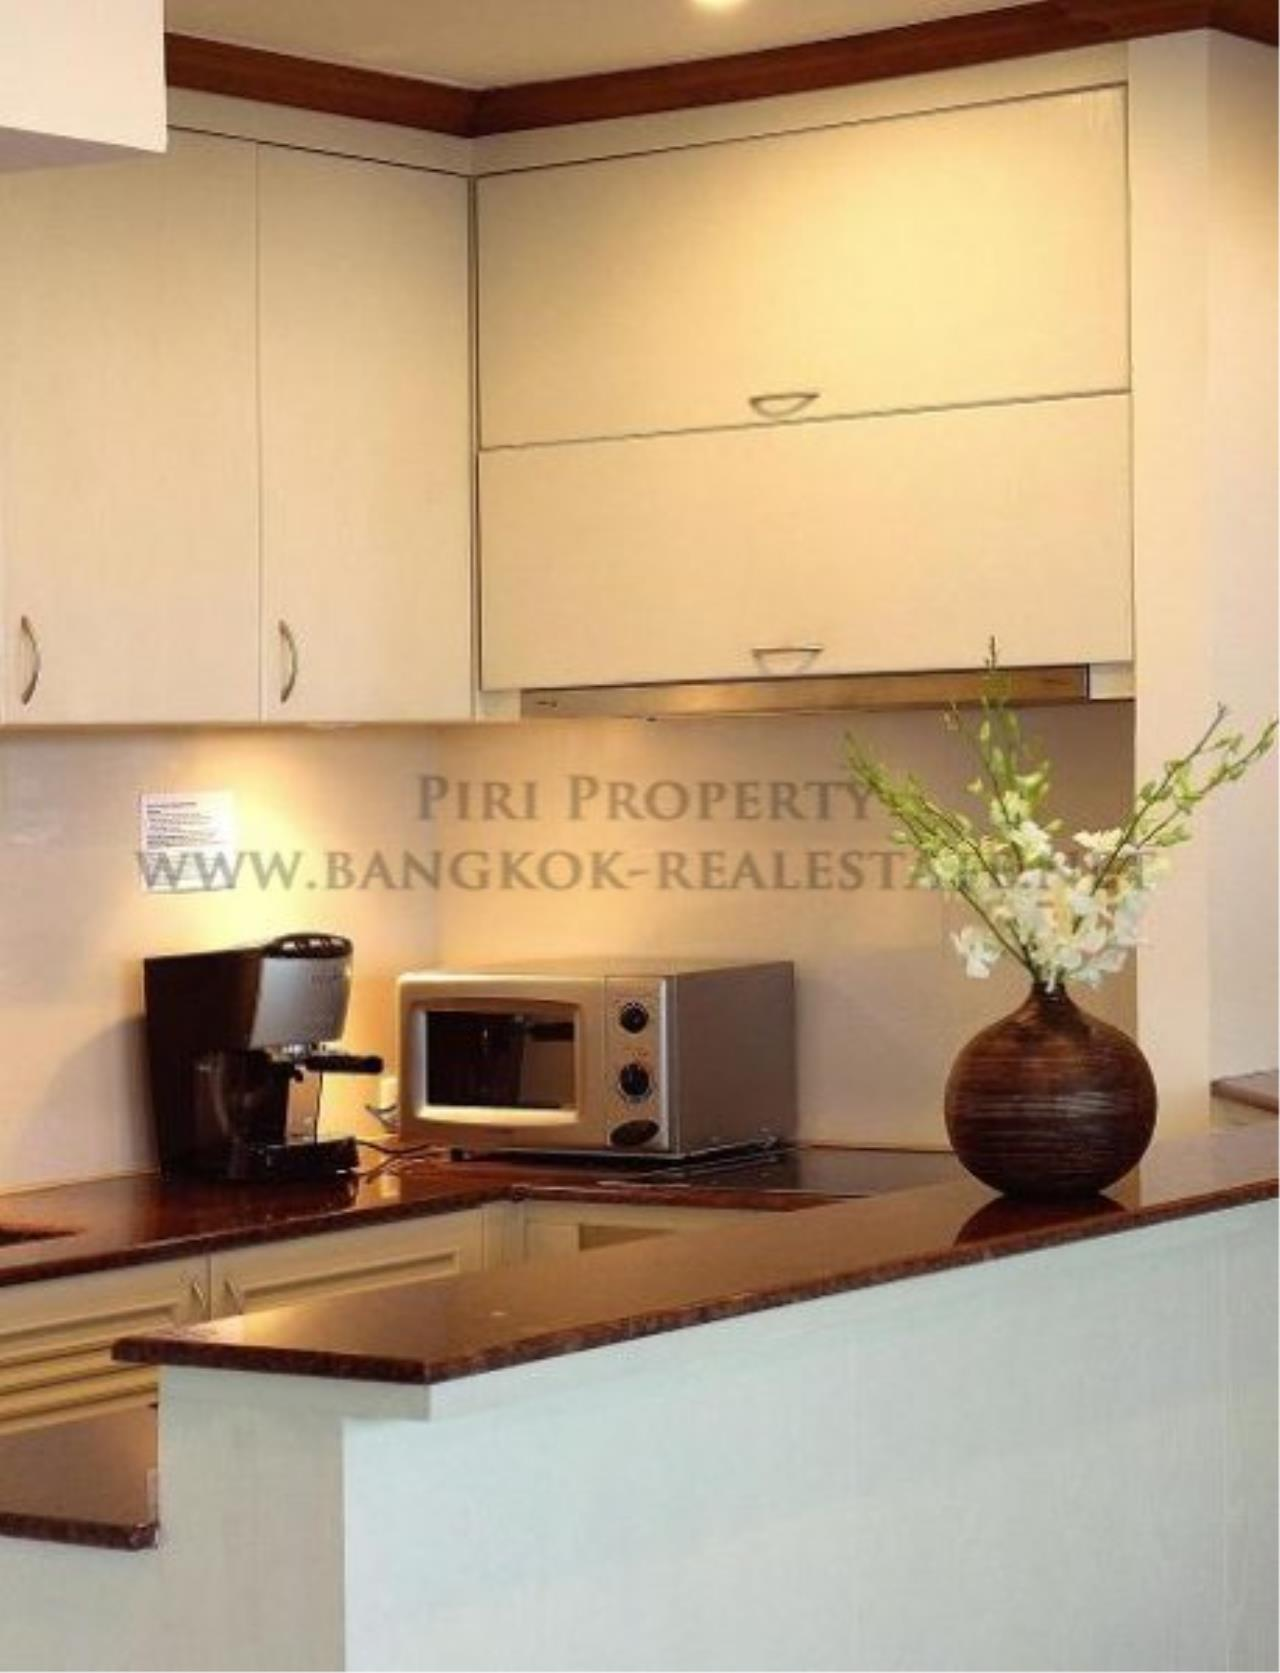 Piri Property Agency's 2 Bedroom Condo with great Outdoor Terrace of 40 SQM - Just a 5 minute walk to the BTS 4